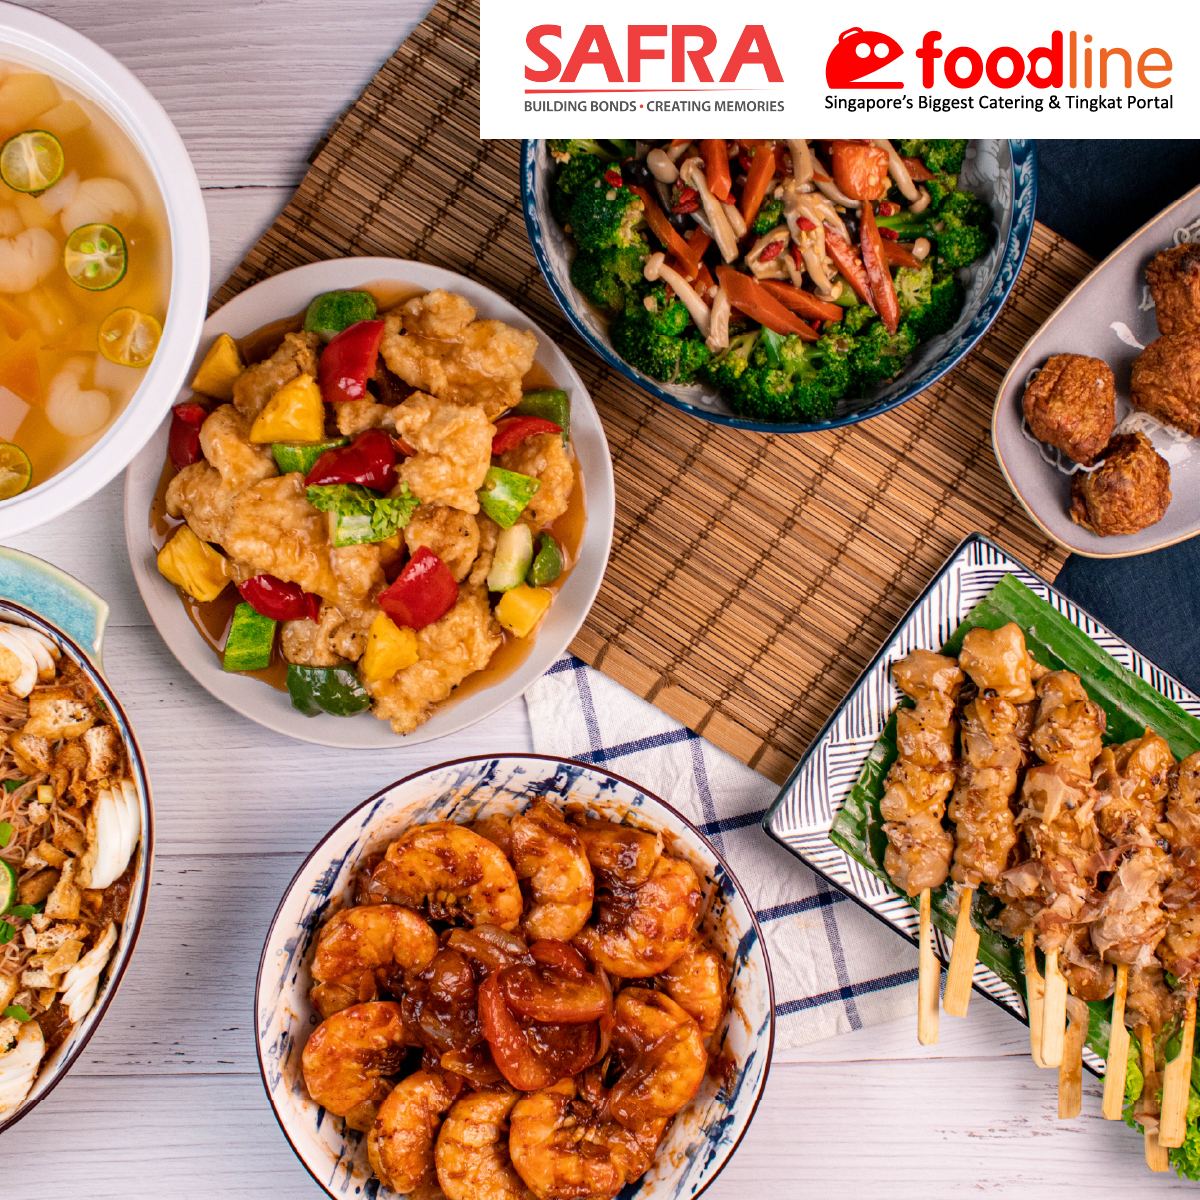 FoodLine.sg - Up To $12 Off Orders With Min. Spend